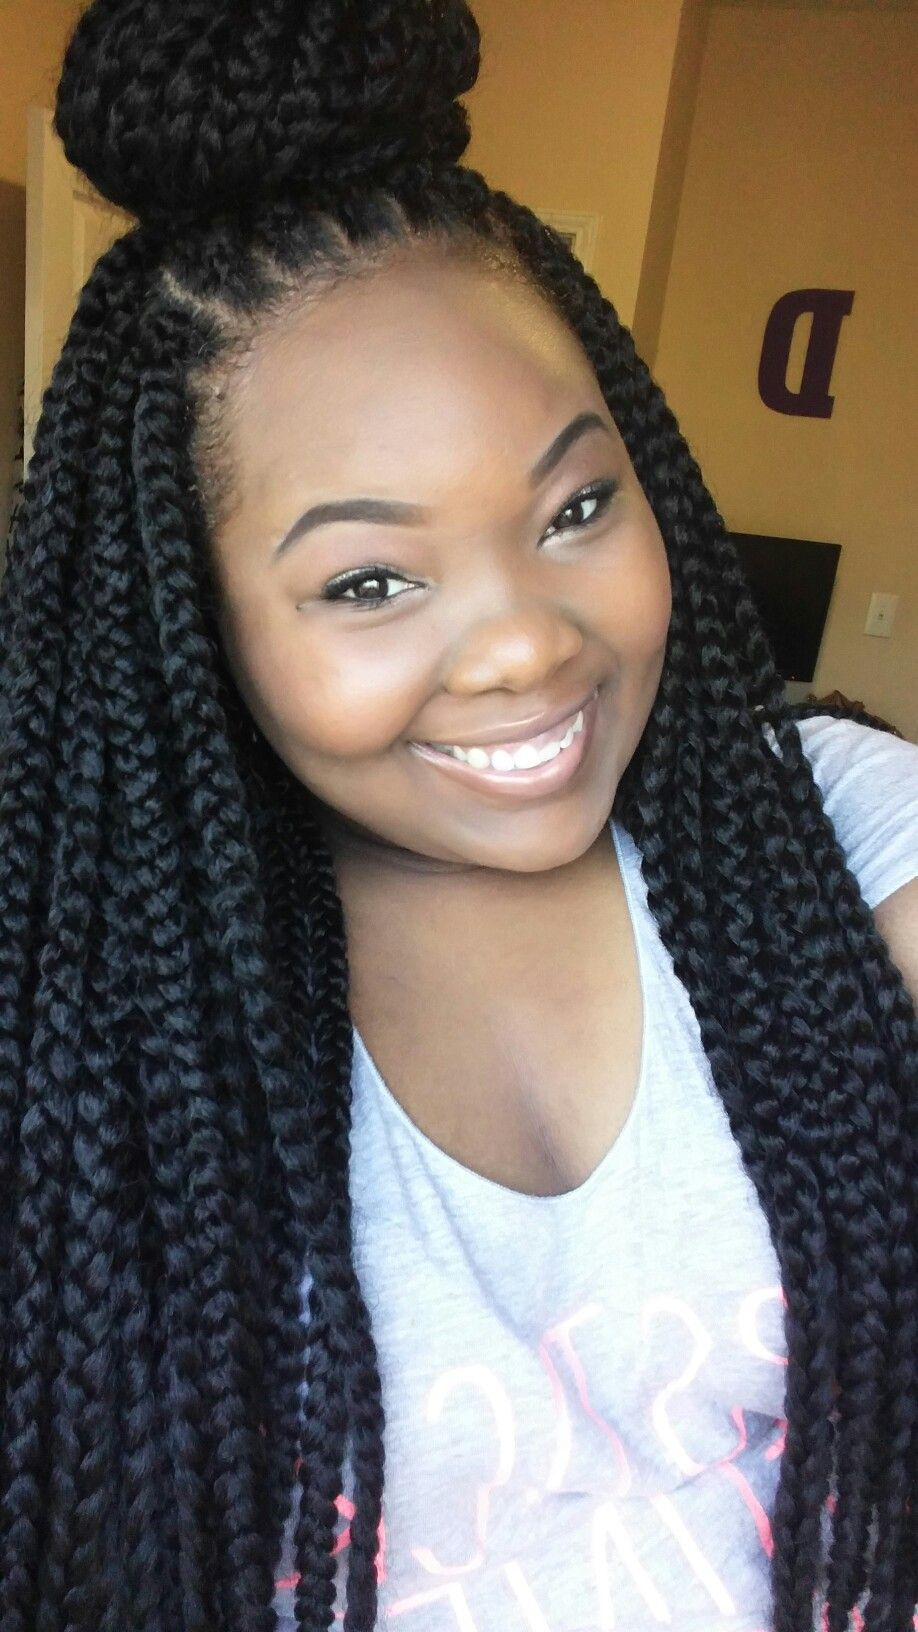 crochet braids - freetress long box braids (7 packs) | oowee i love